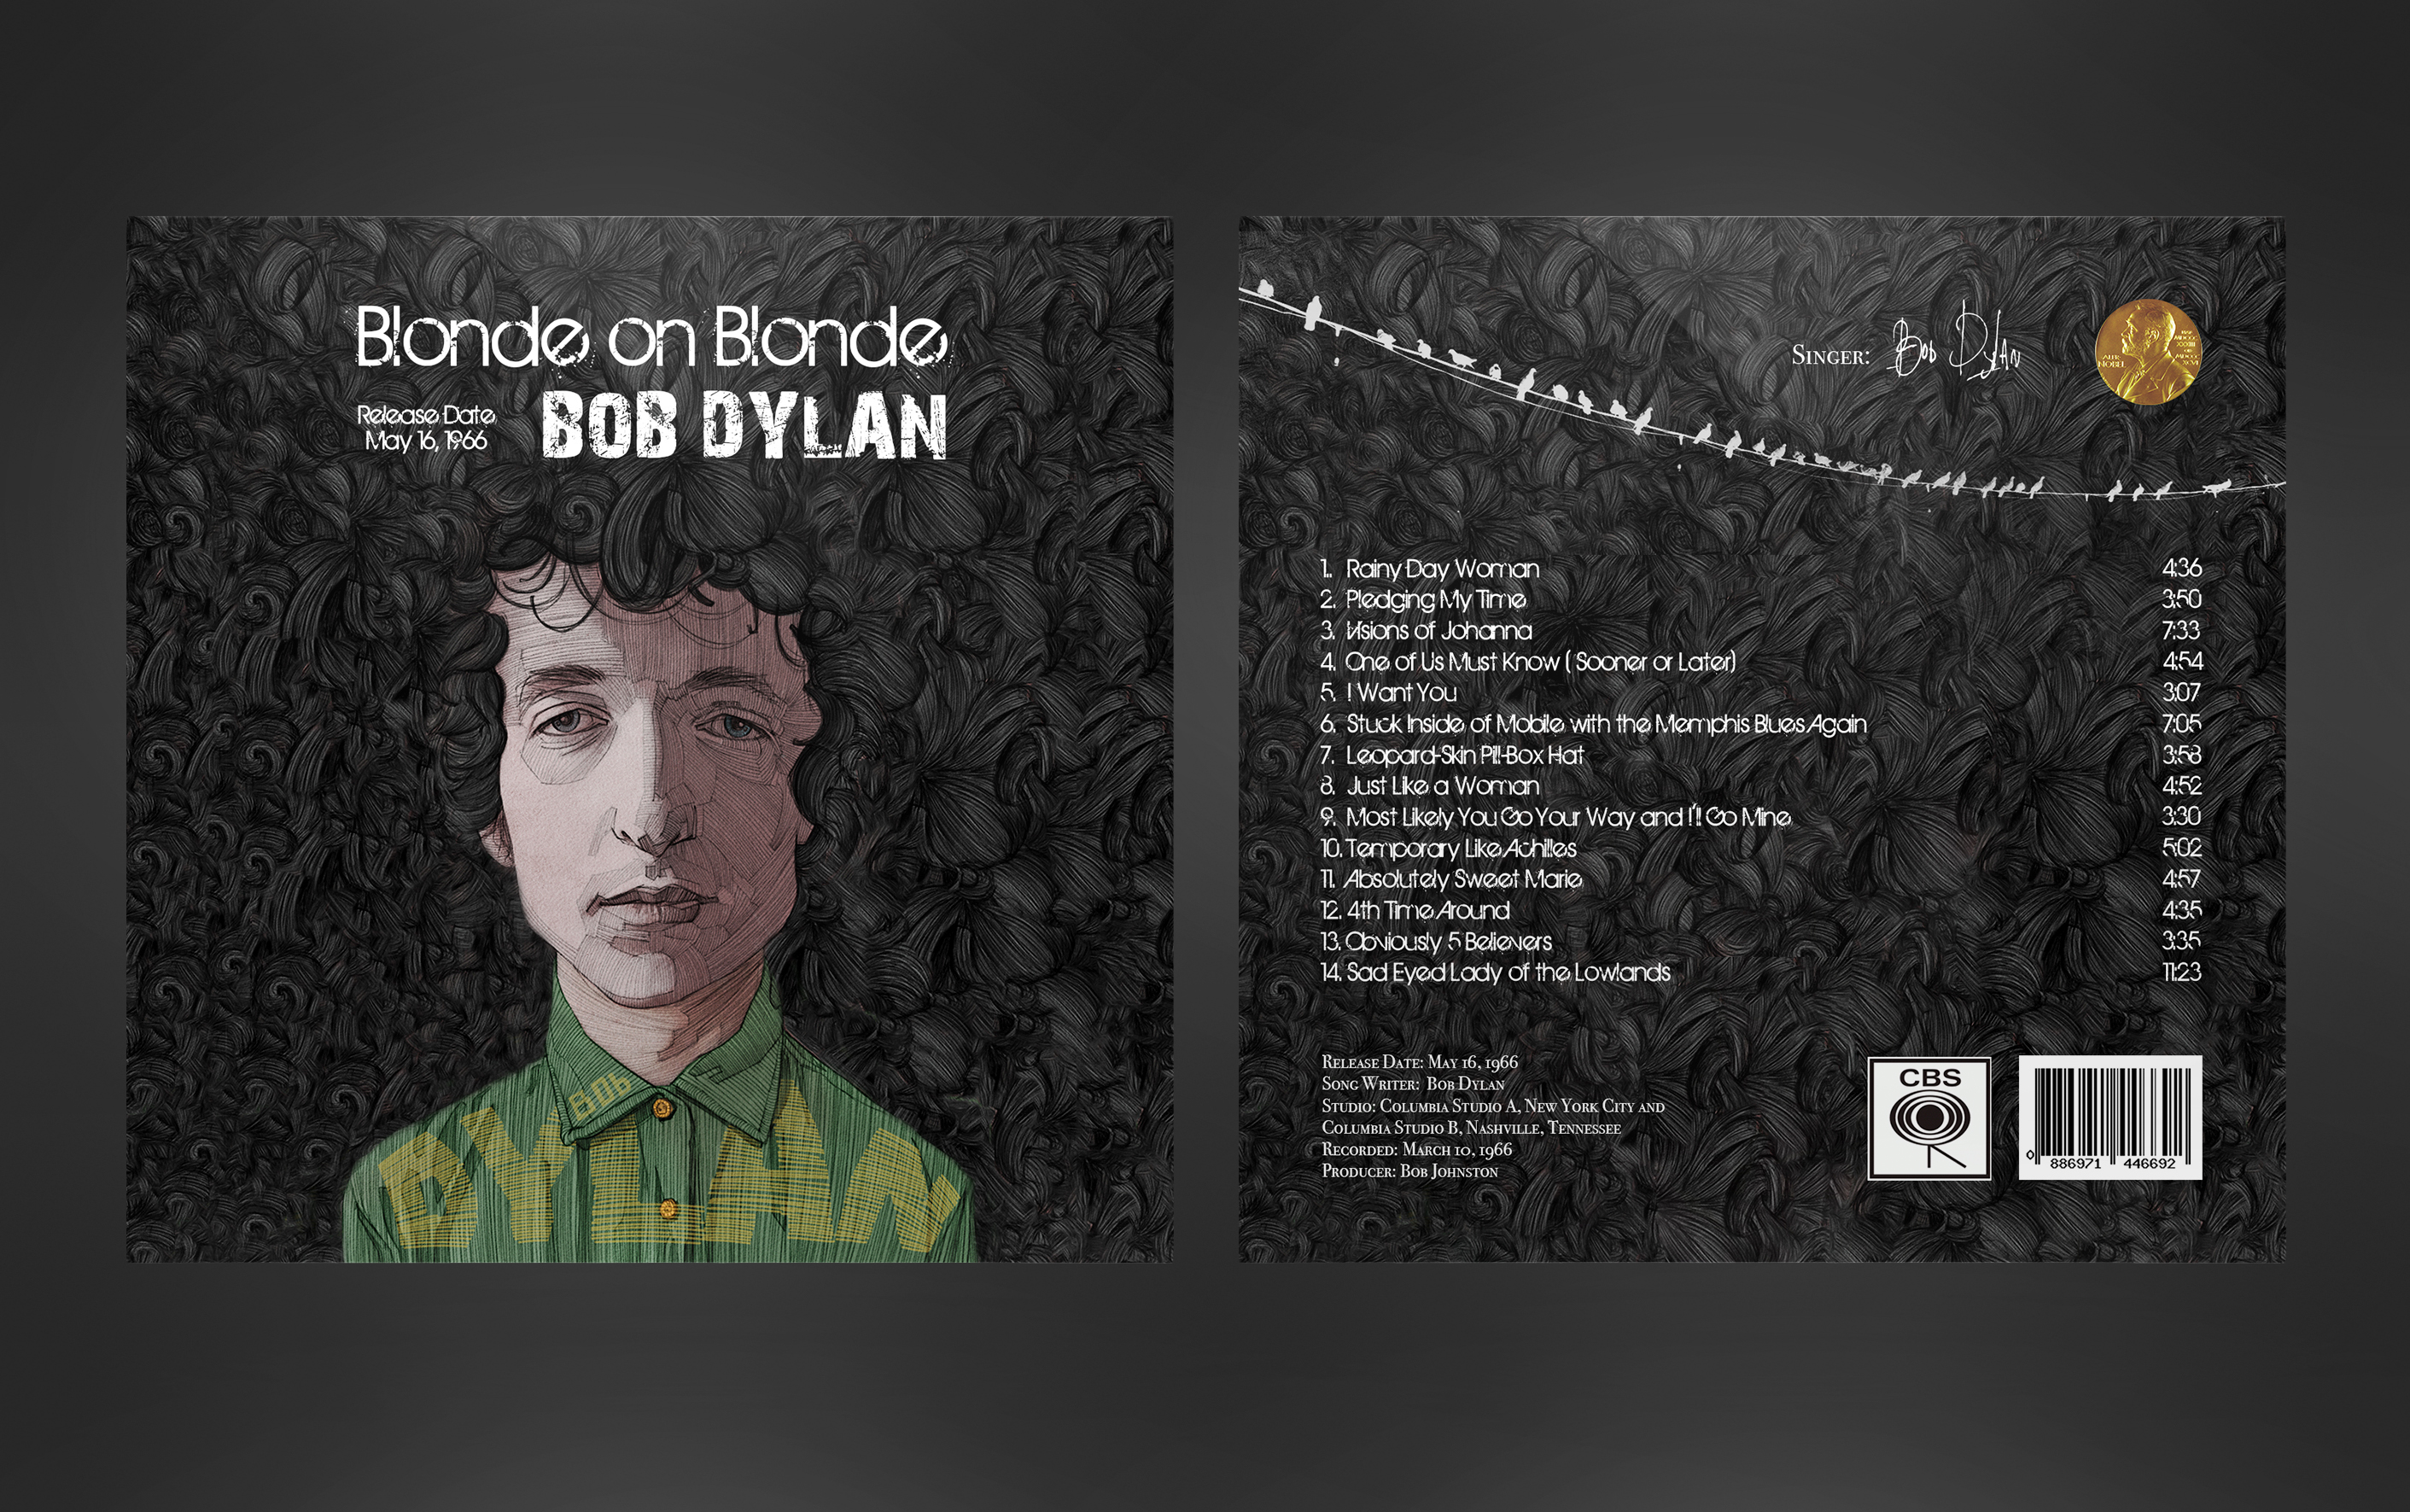 Bob Dylan's Album Cover